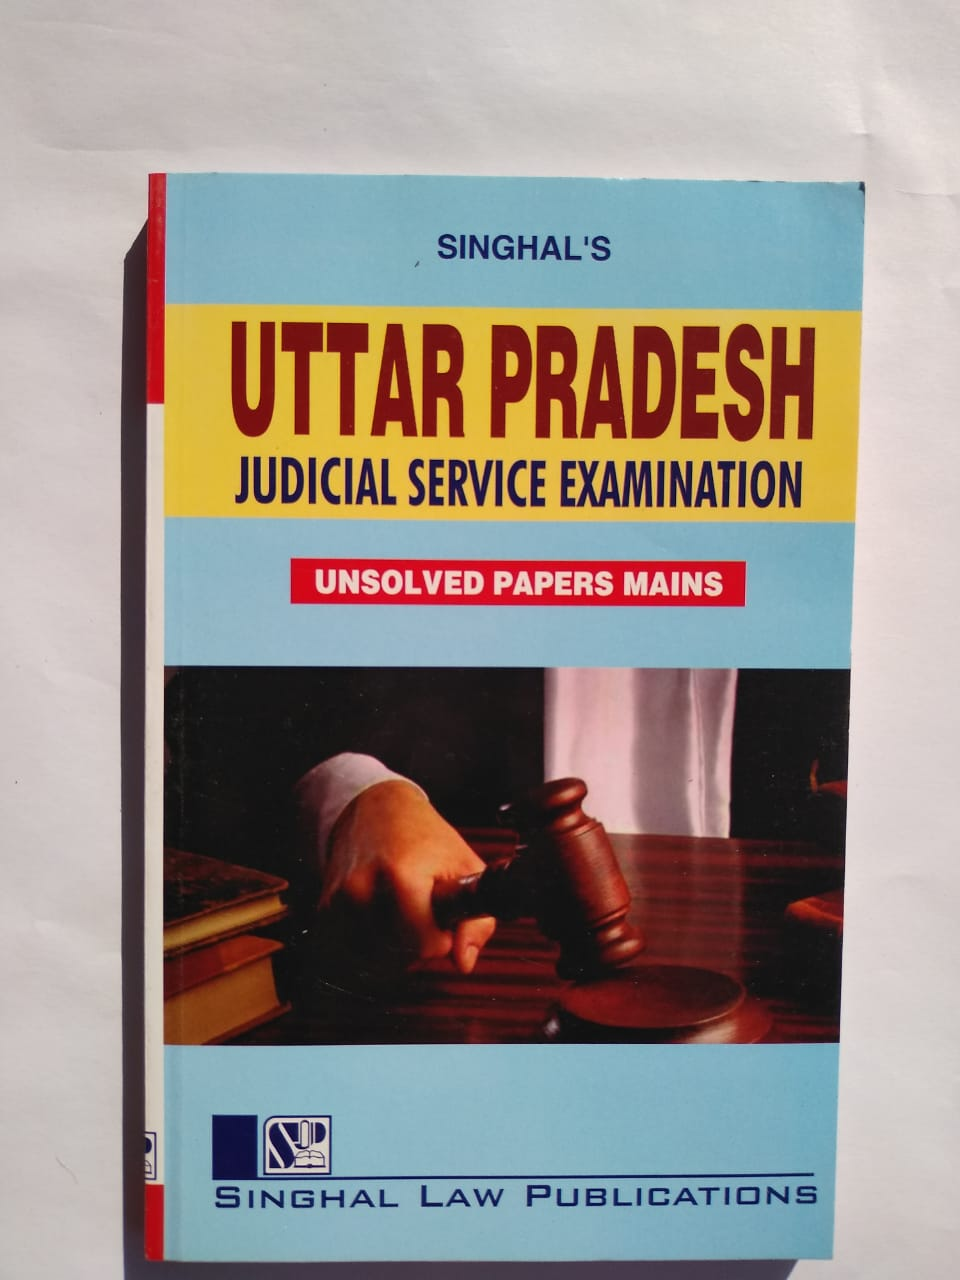 Singhal's Uttar Pradesh Judicial Service Examination Unsolved Papers Mains